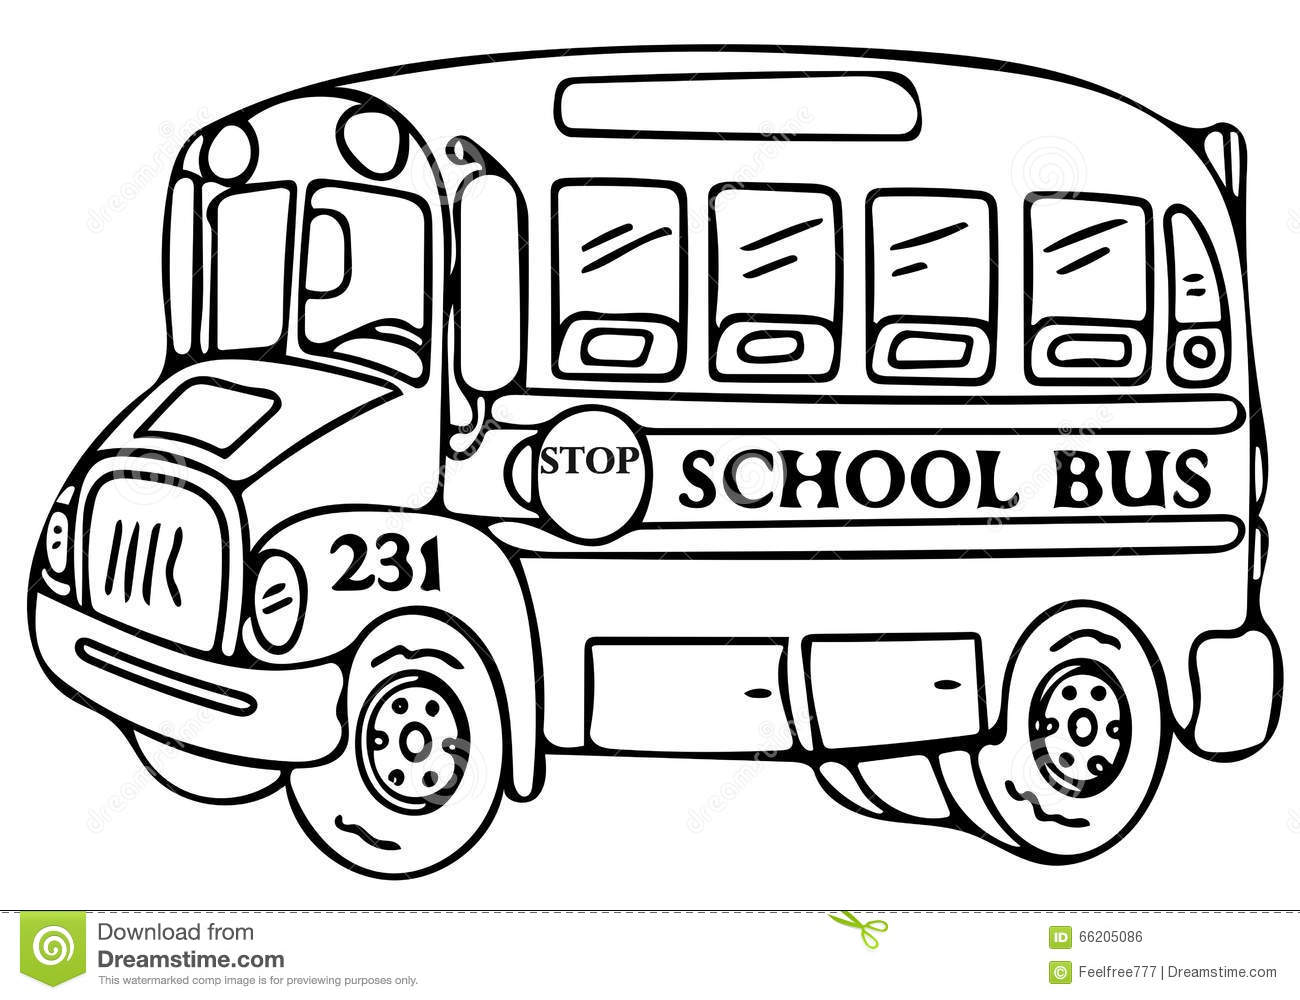 Adult Best Coloring Pages Of School Buses Gallery Images cute grandma coloring pages school bus images